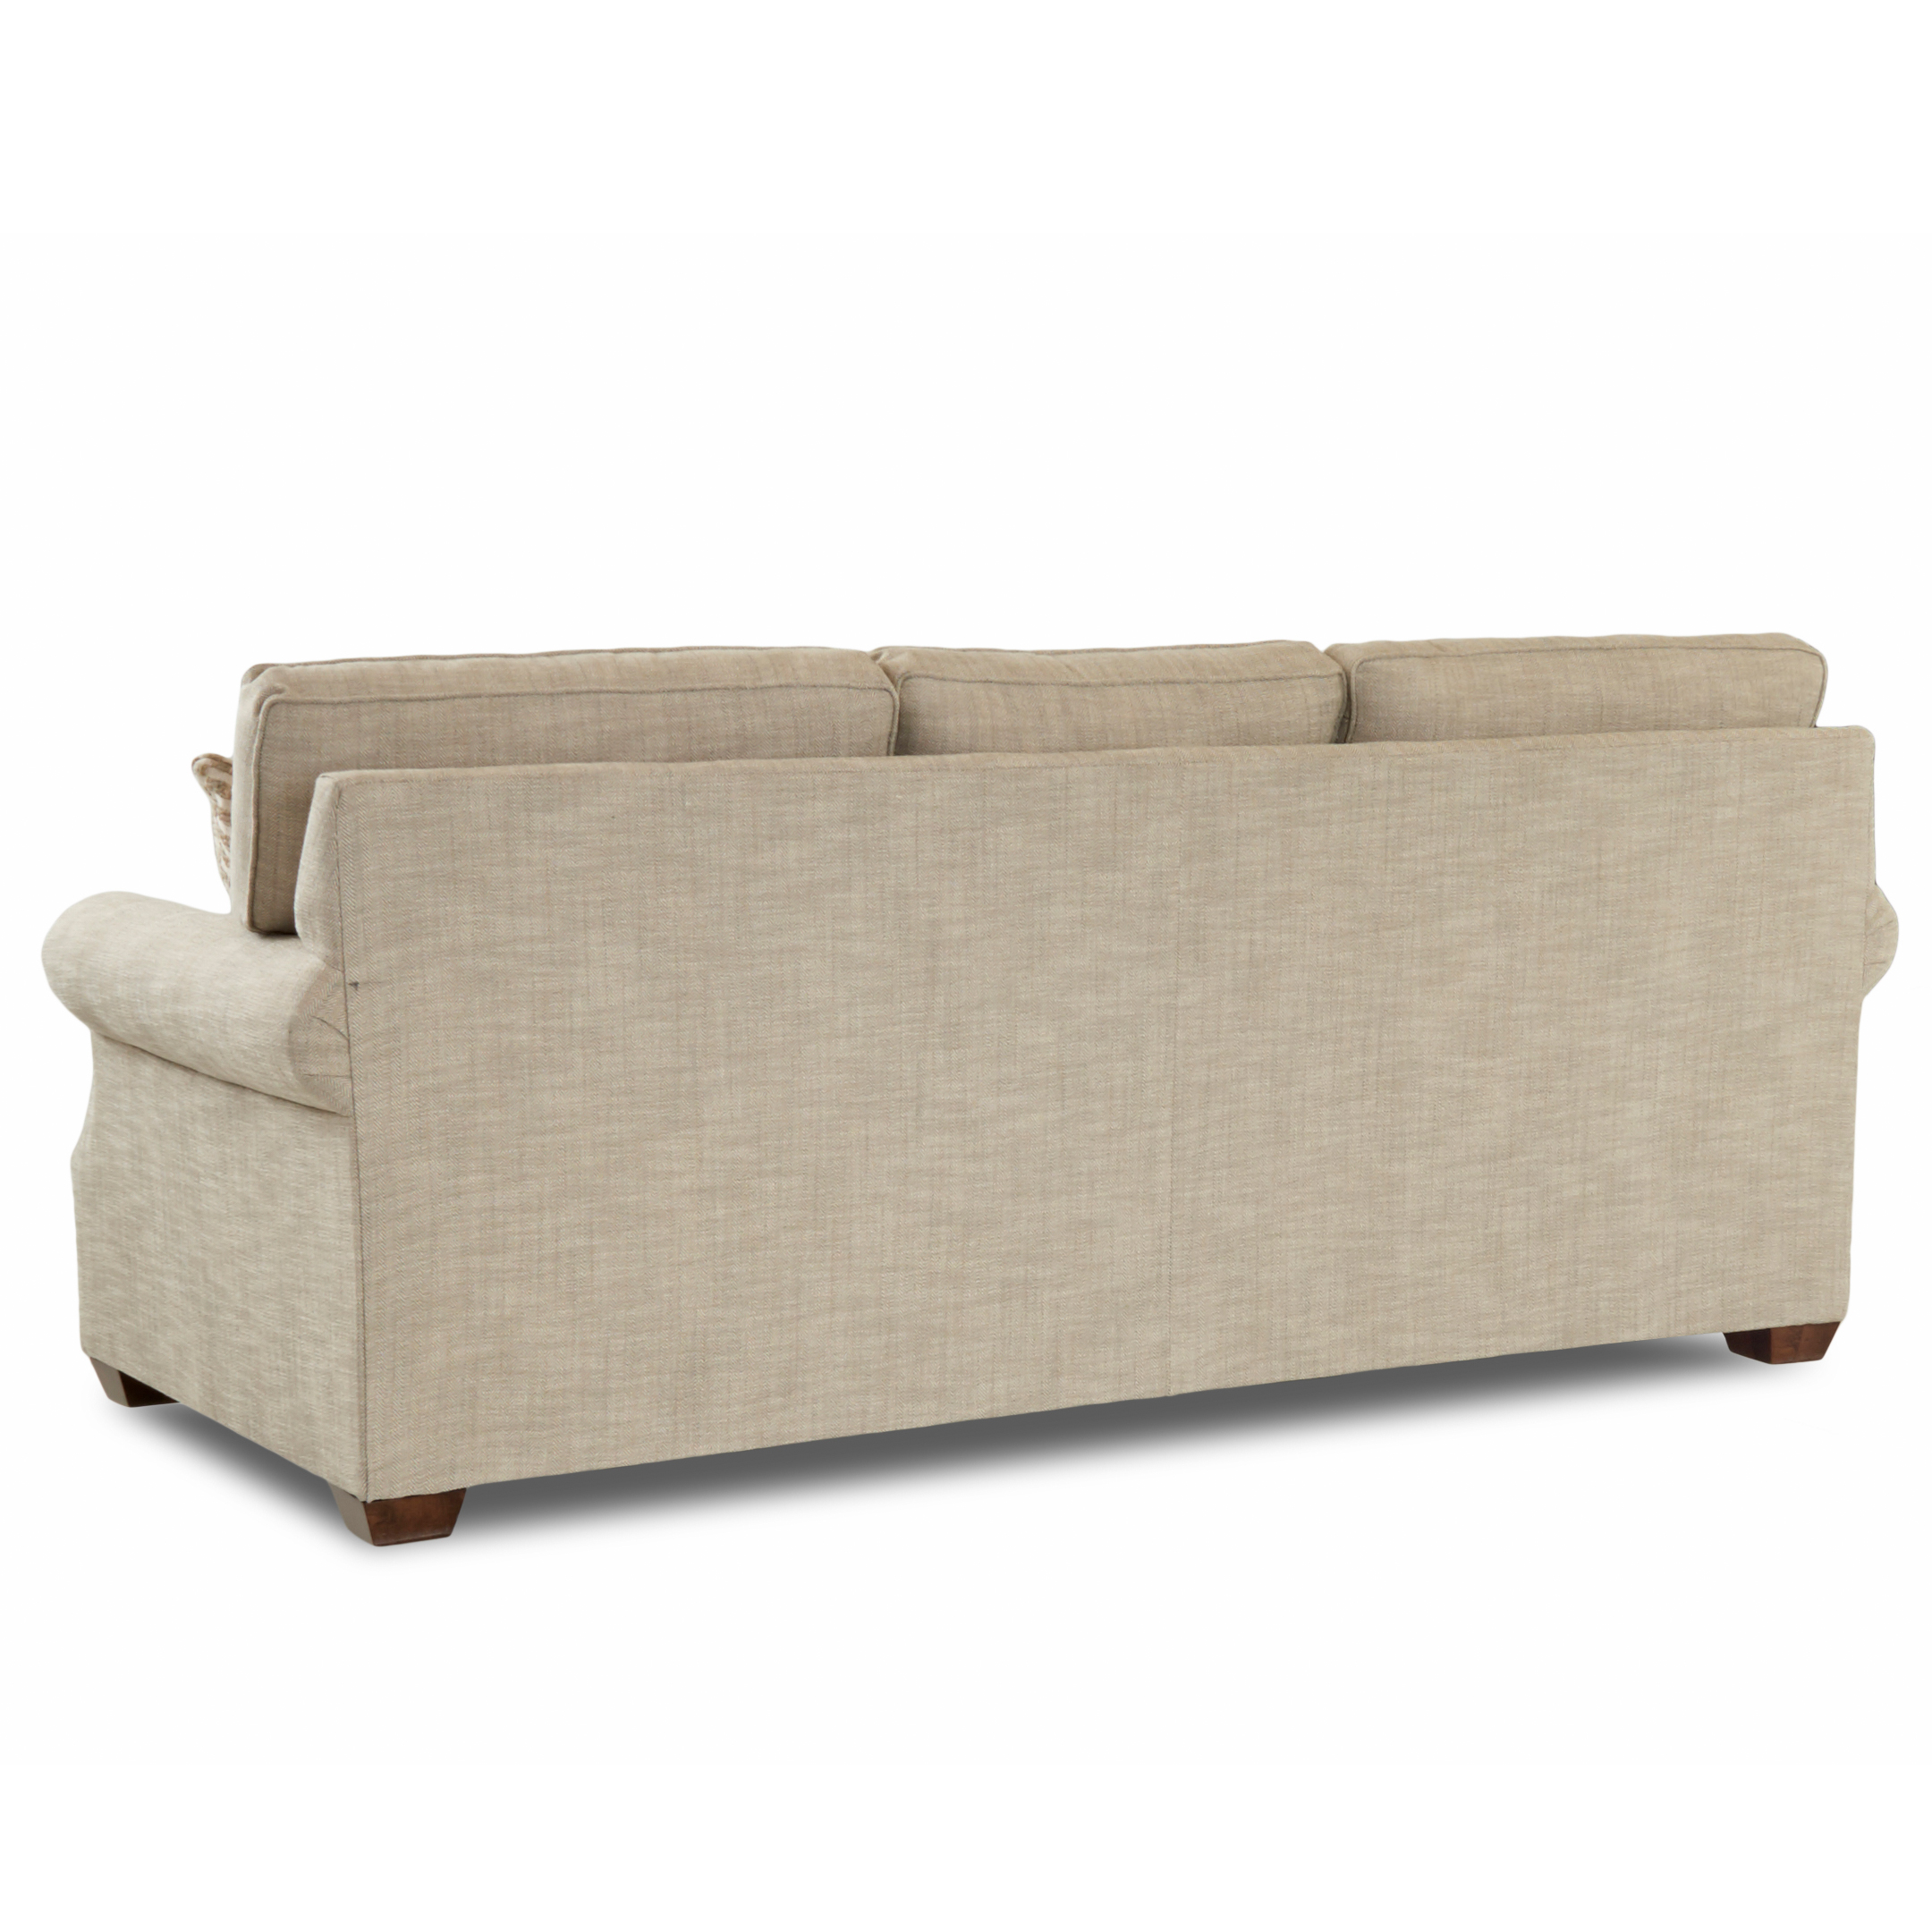 Wyatt K36500 89 Sofa Sofas And Sectionals